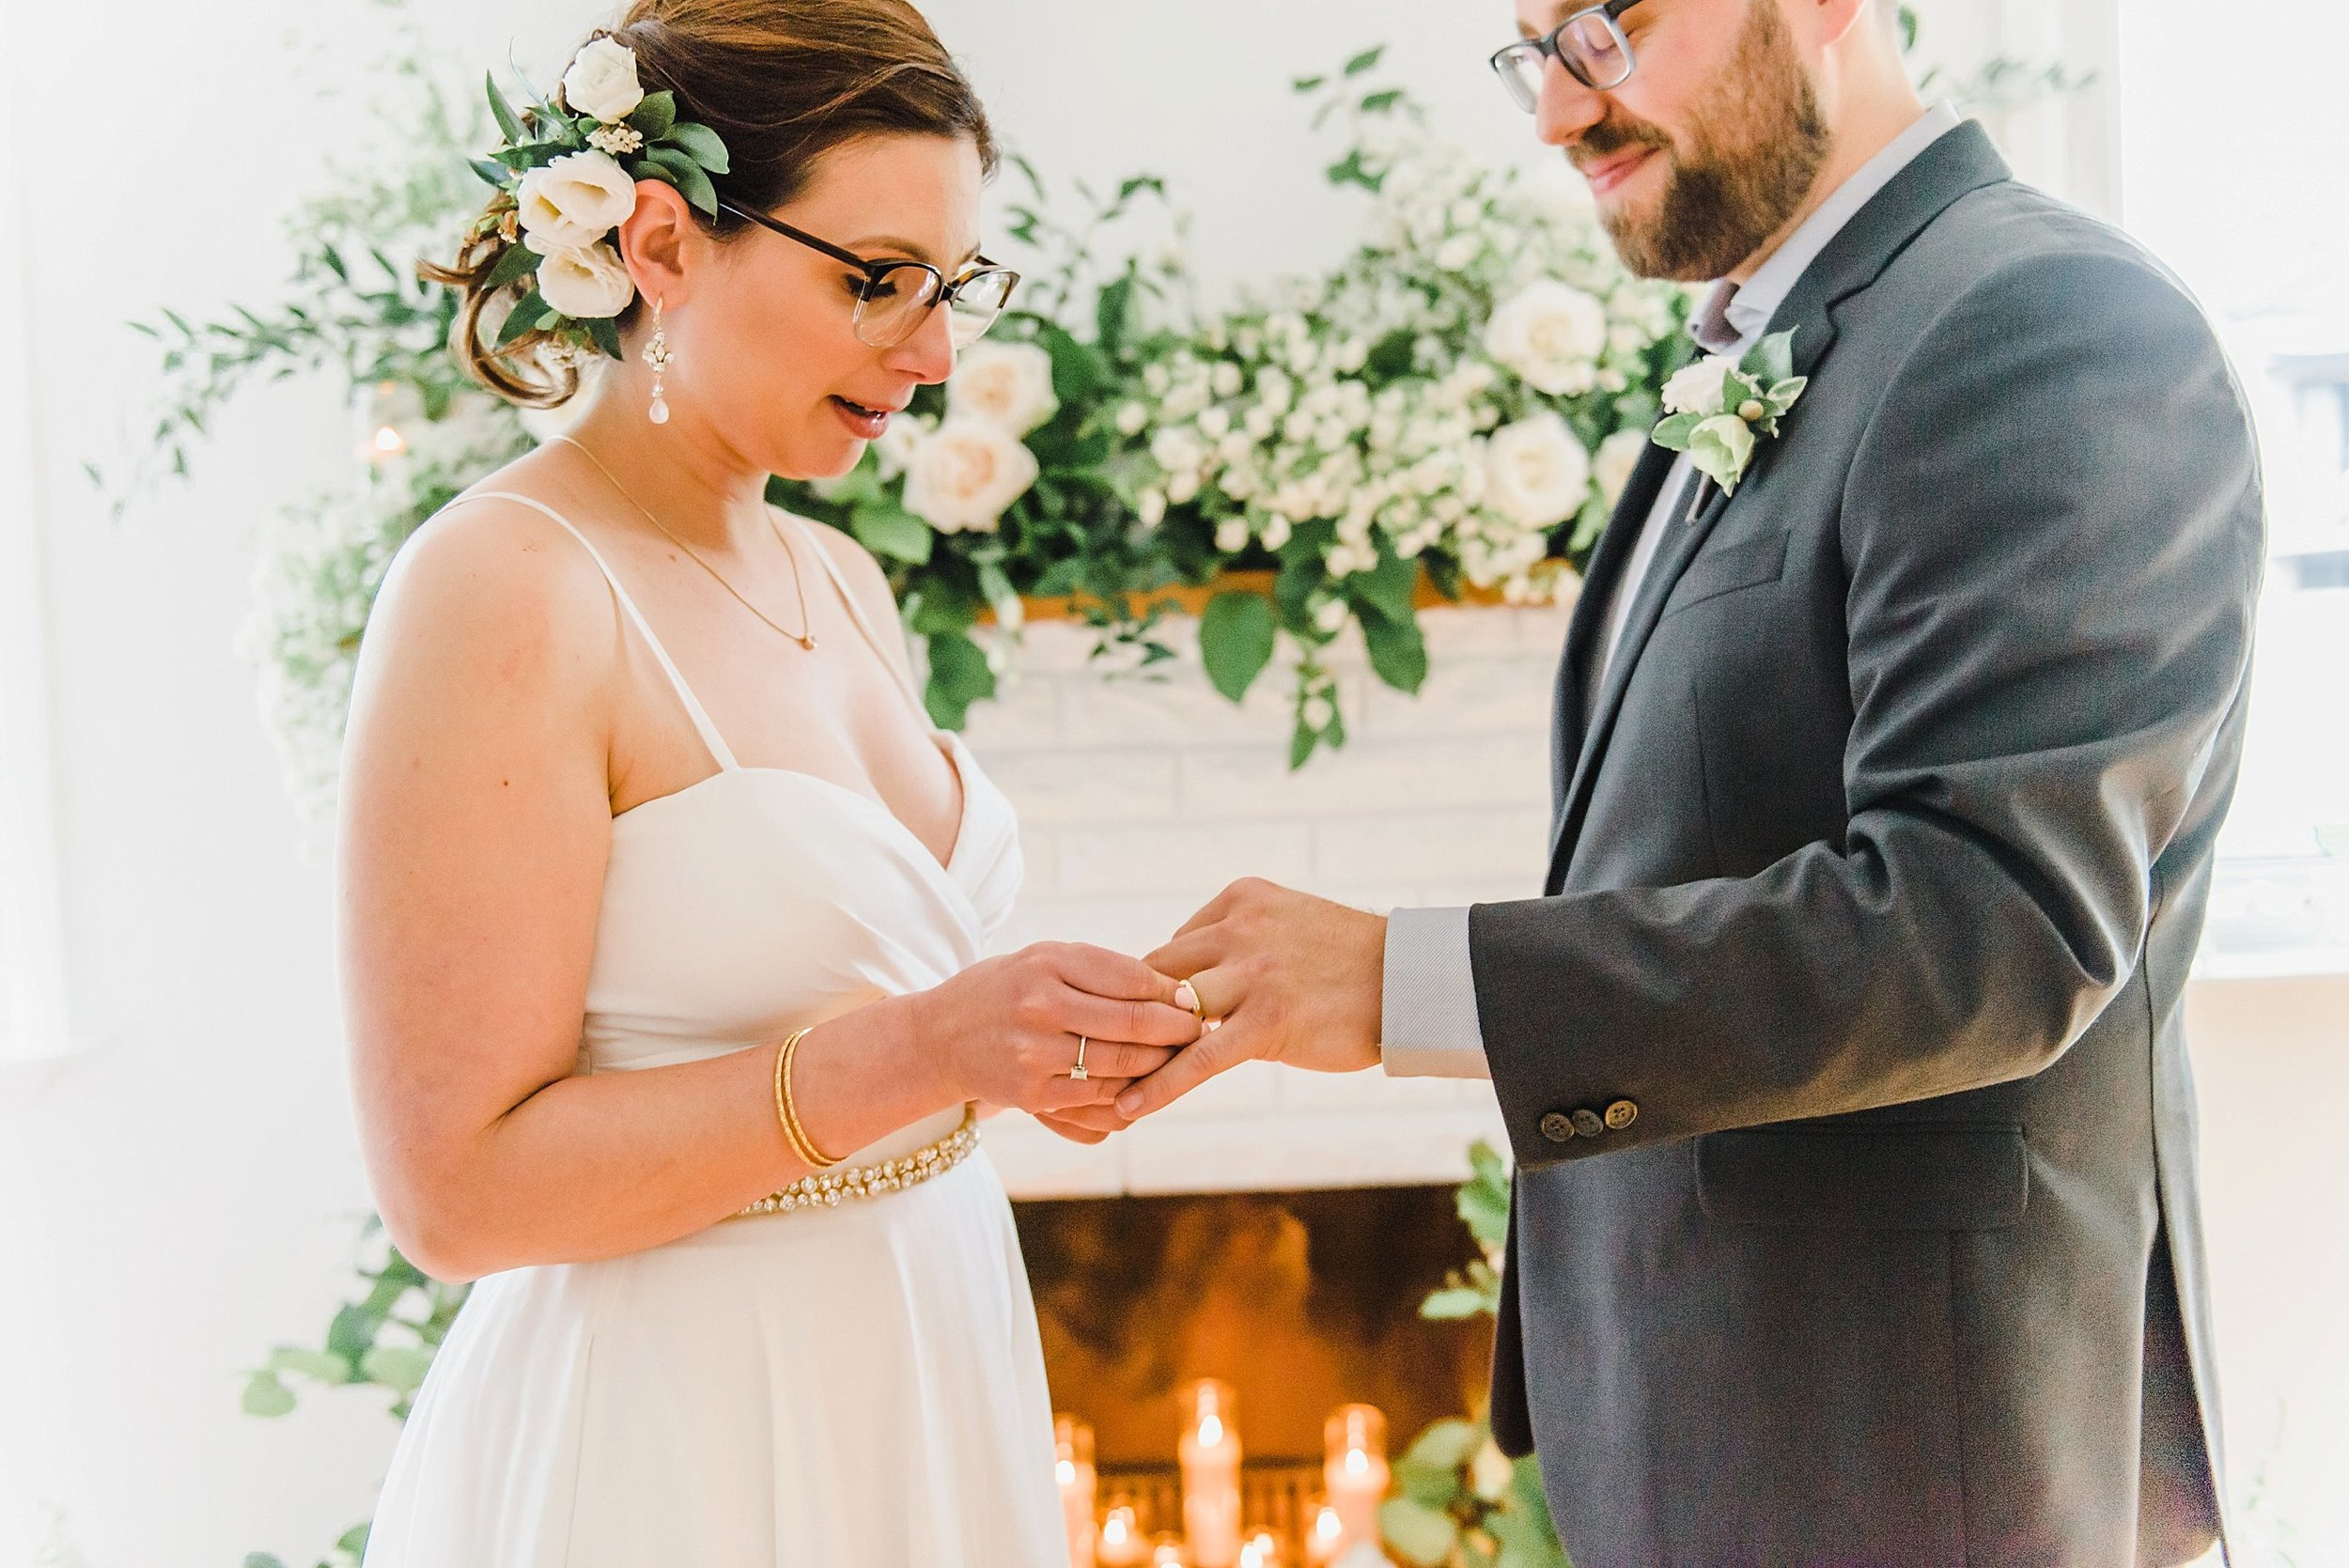 light airy indie fine art ottawa wedding photographer | Ali and Batoul Photography_1713.jpg